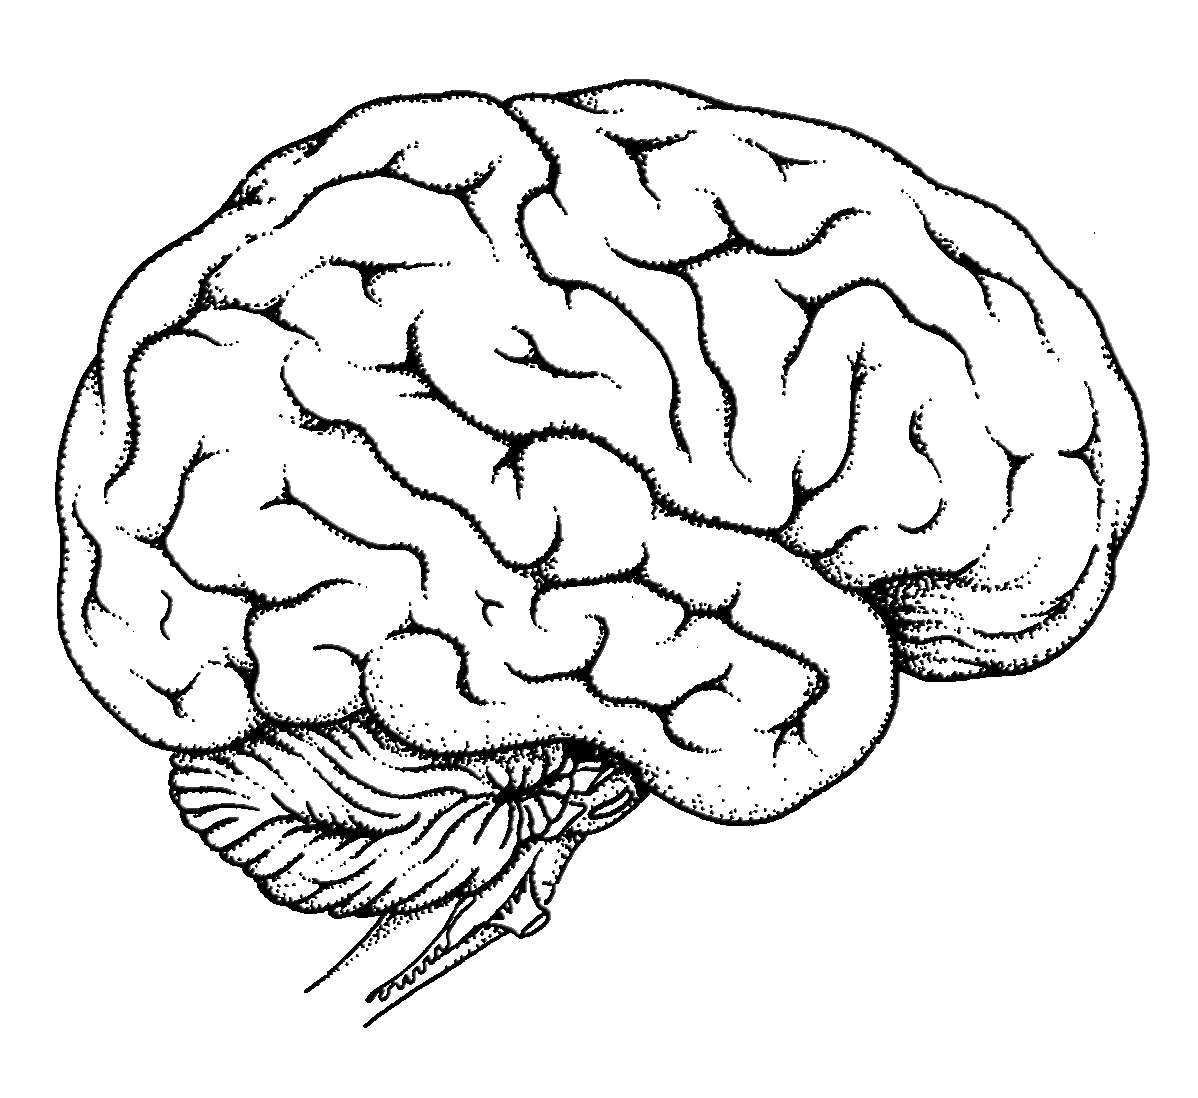 Brain Anatomy Coloring Pages At Getcolorings